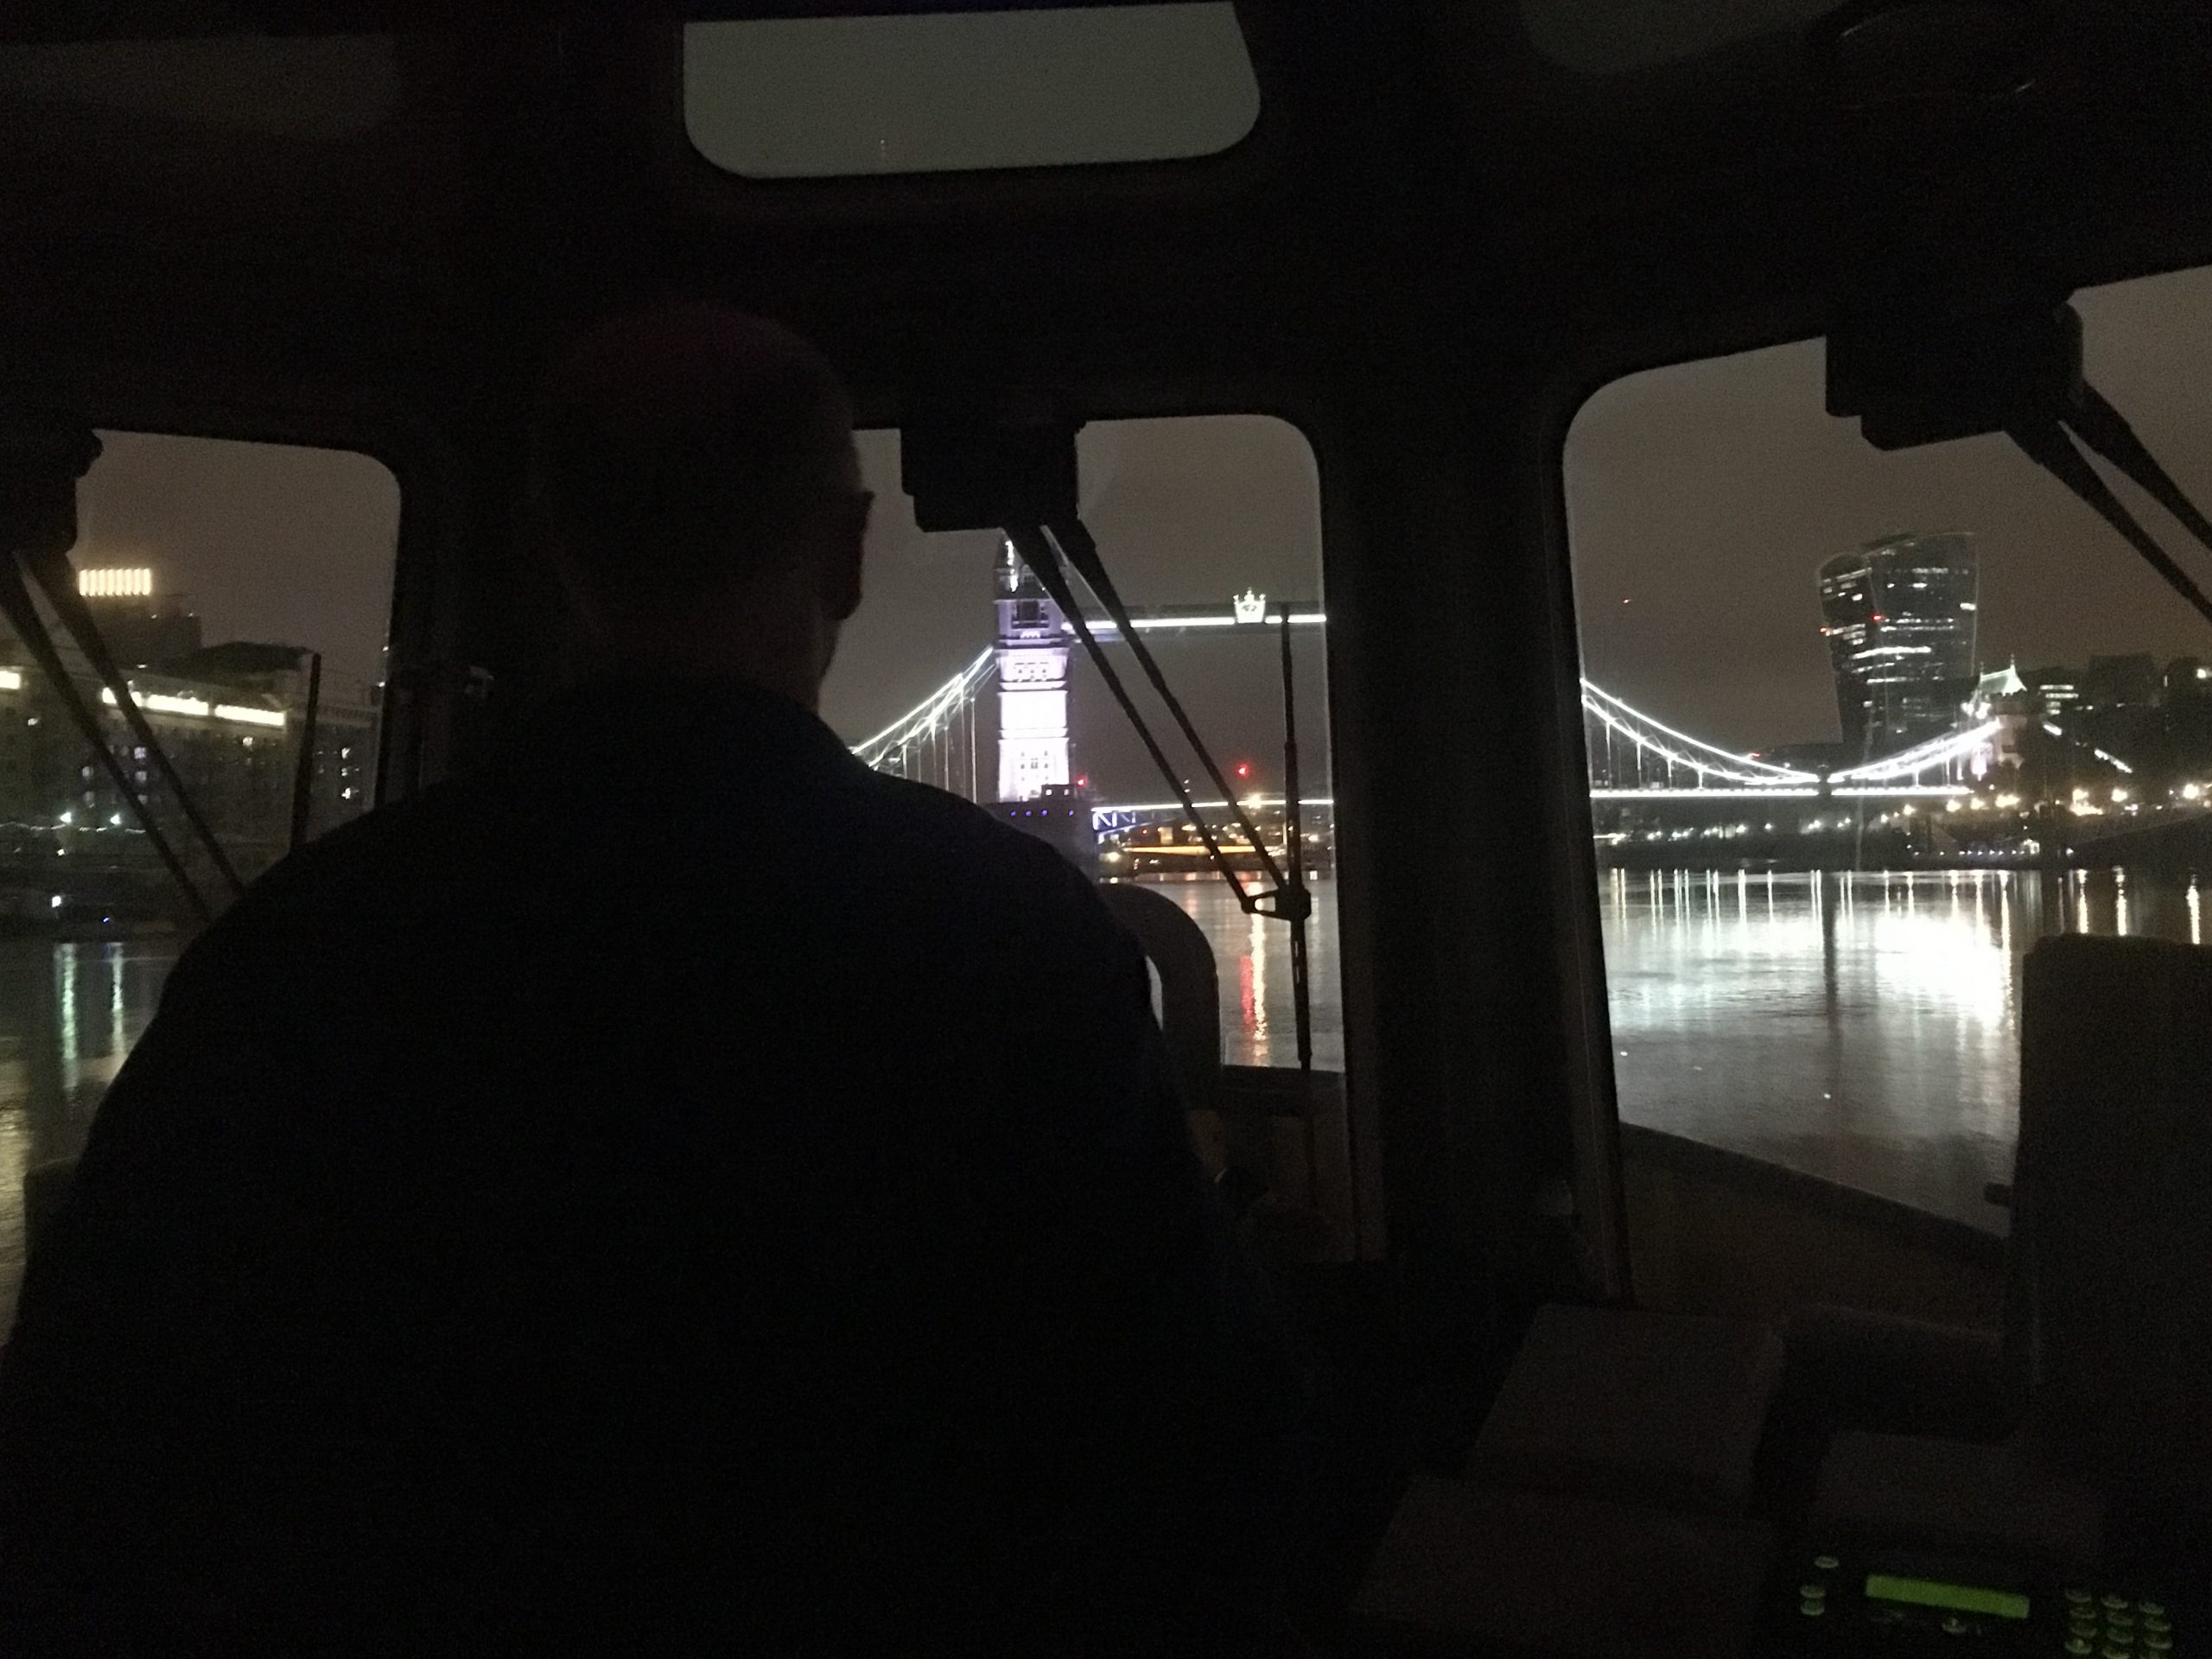 Dark view out onto the Thames from behind the wheel of a boat.